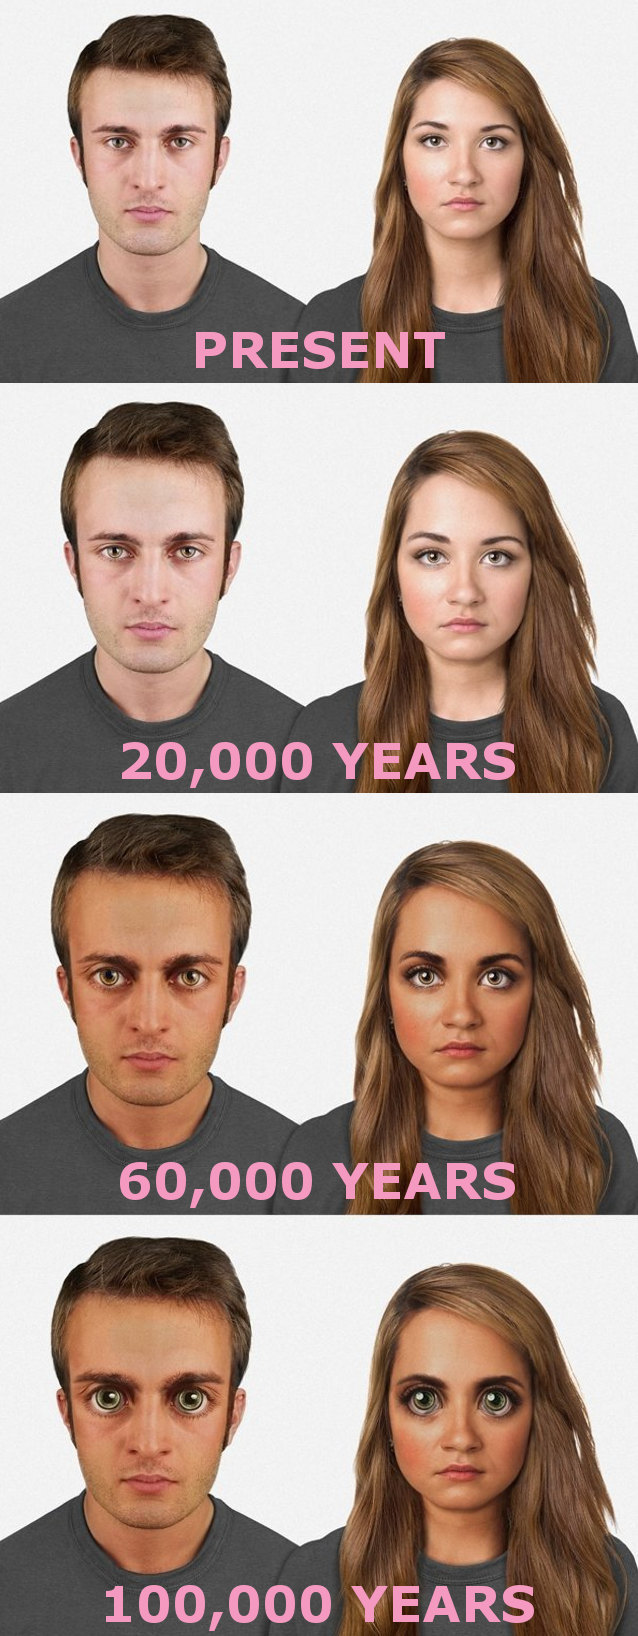 human-faces-in-the-future.jpg